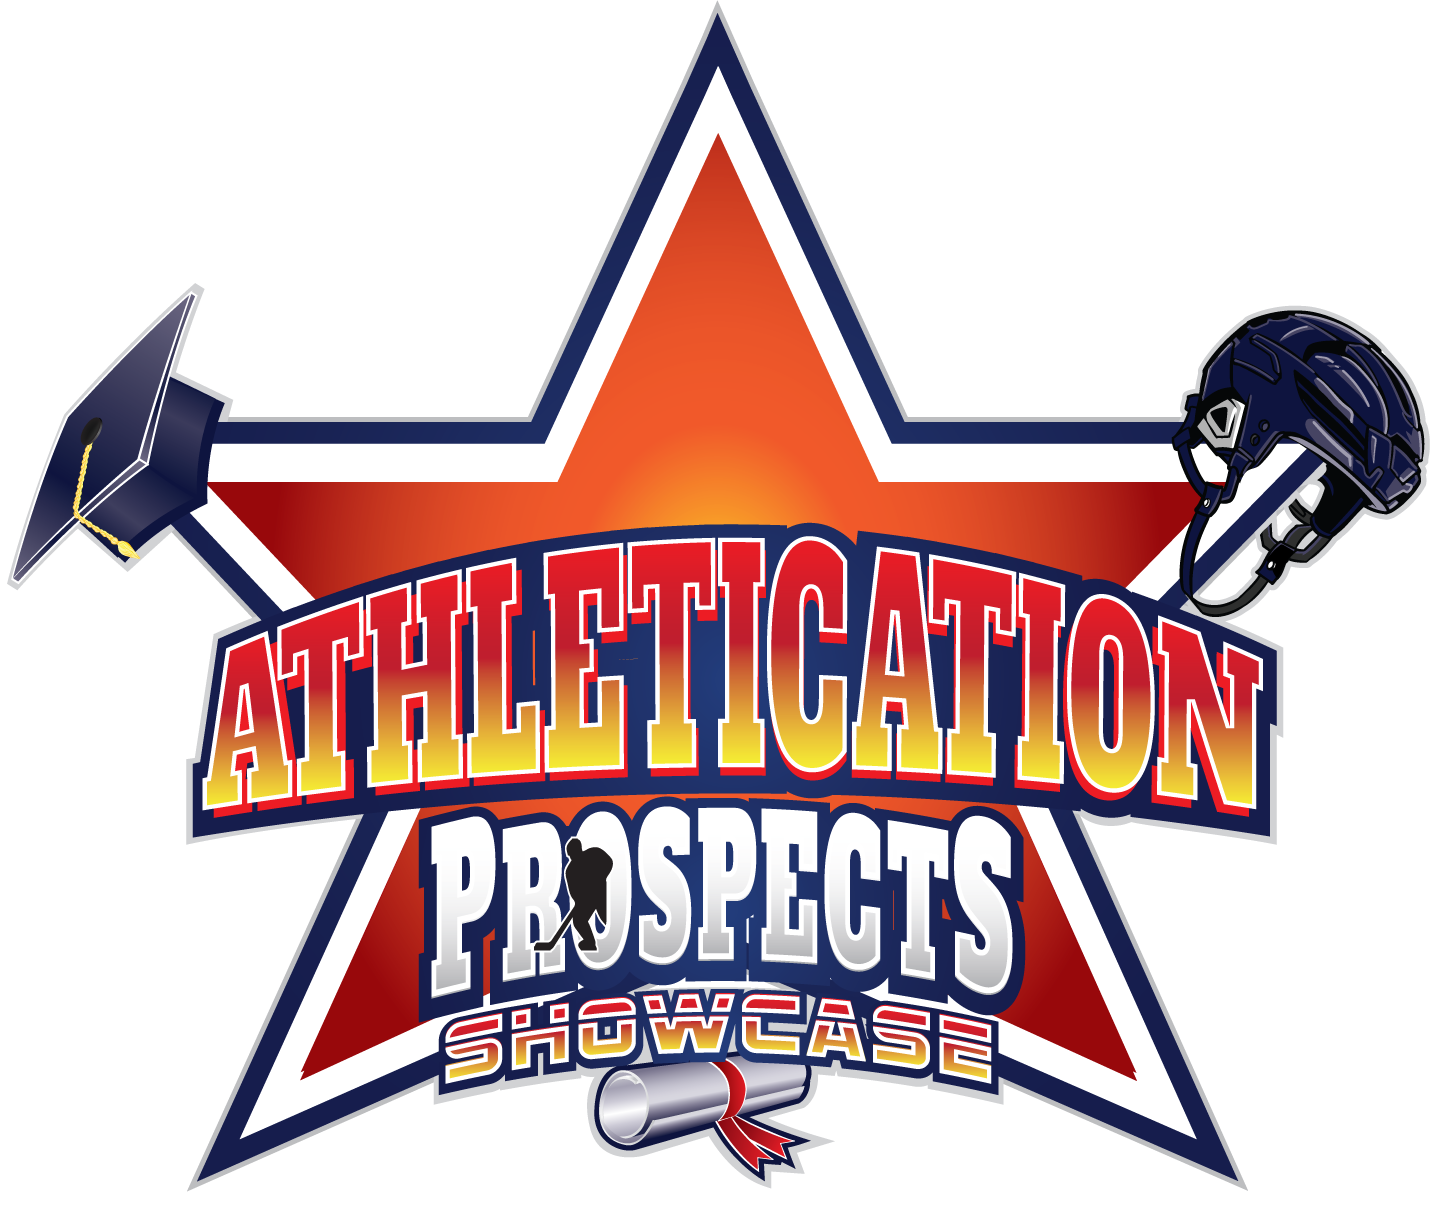 Athletication Prospects Showcase